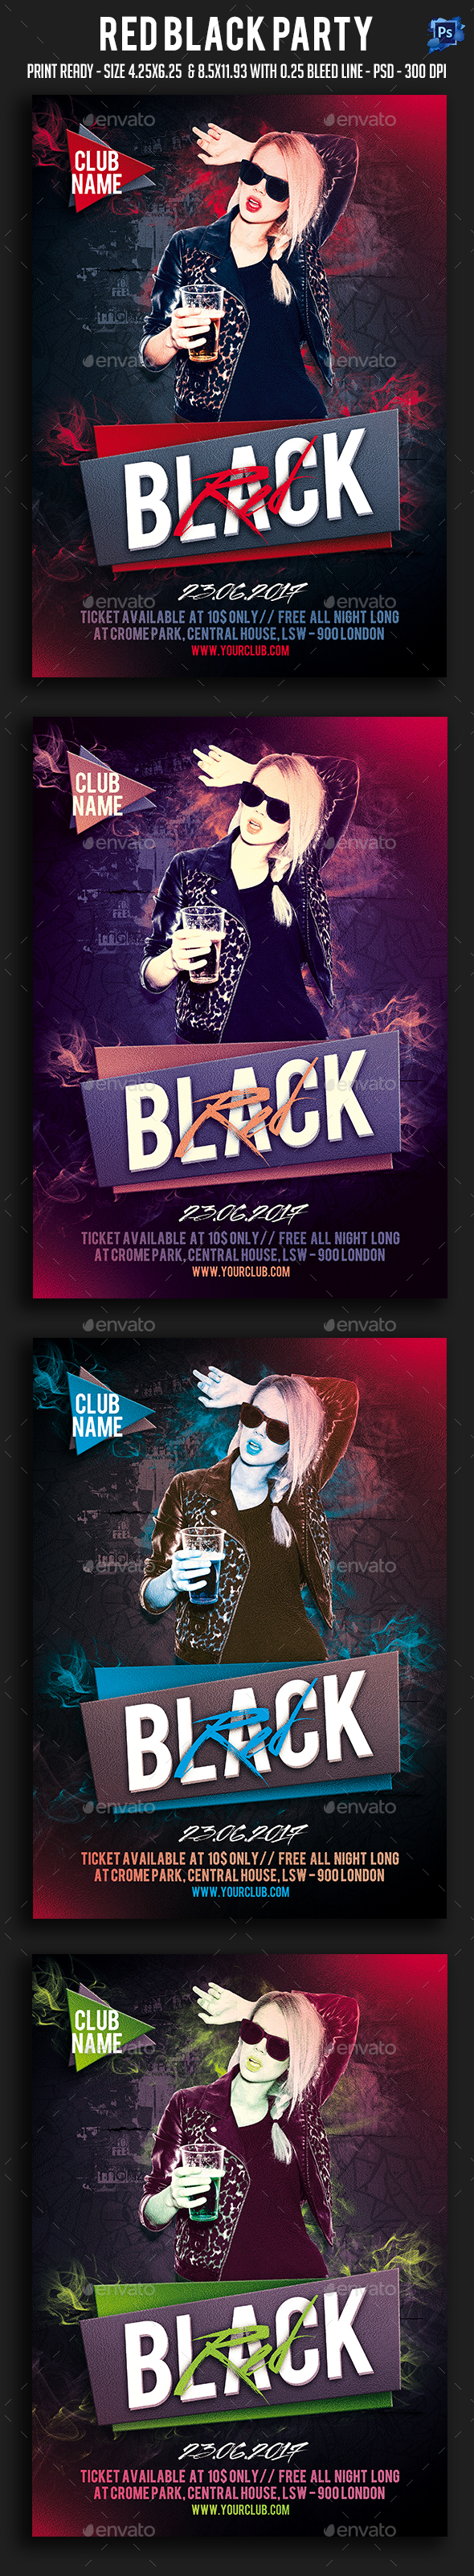 Red Black Party Flyer - Clubs & Parties Events